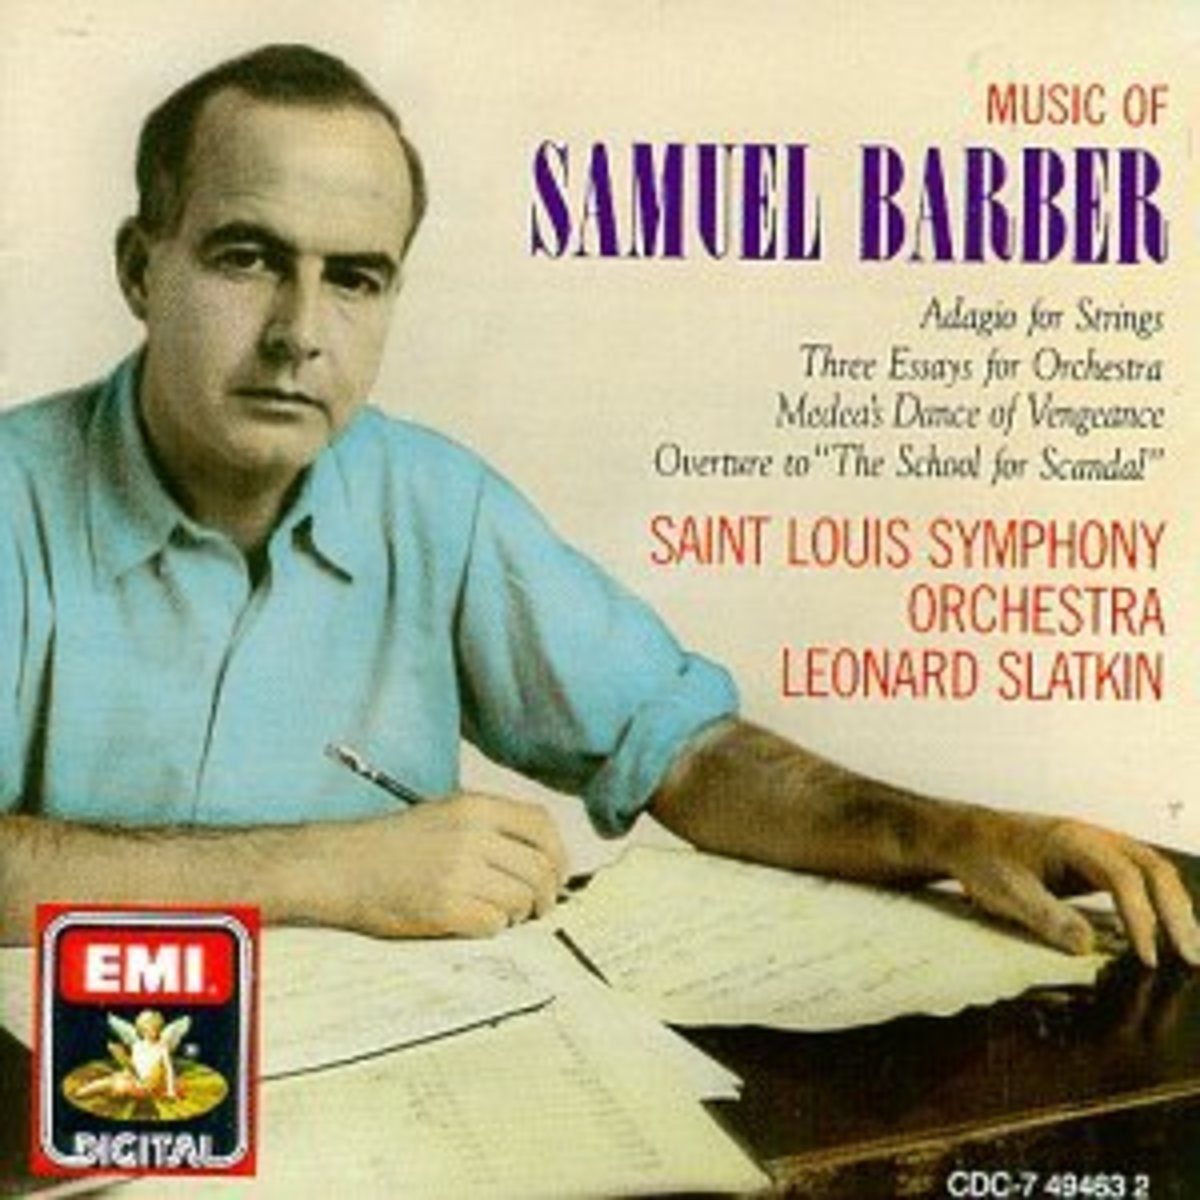 20th Century Classical Music: Analysis of Adagio for Strings by Samuel Barber